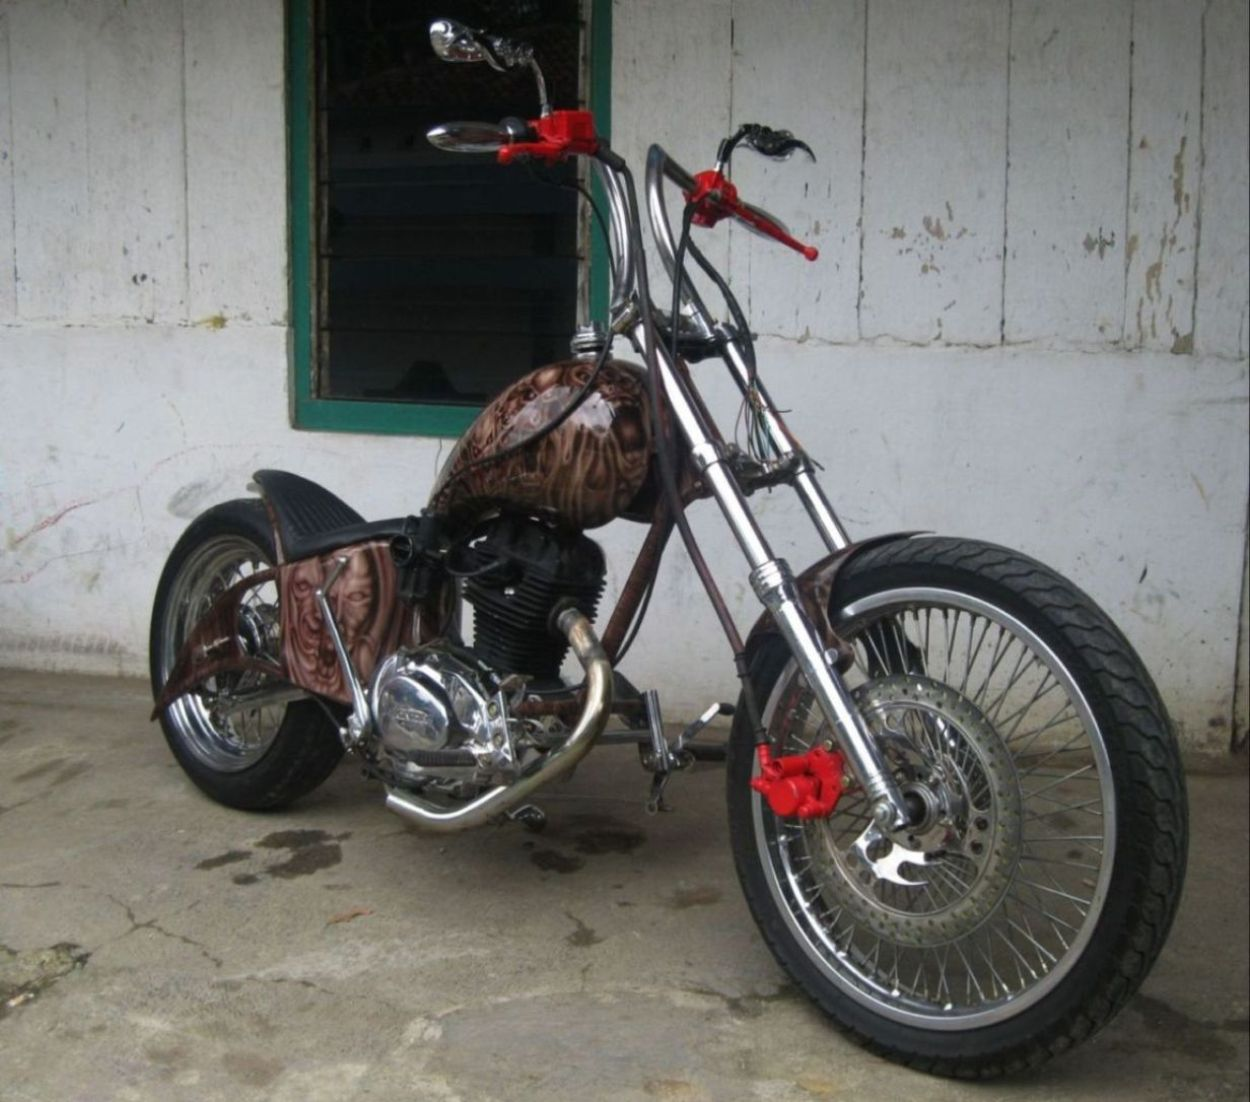 Download Ide 90 Motor Cb Modif Chopper Terkeren Fire Modif